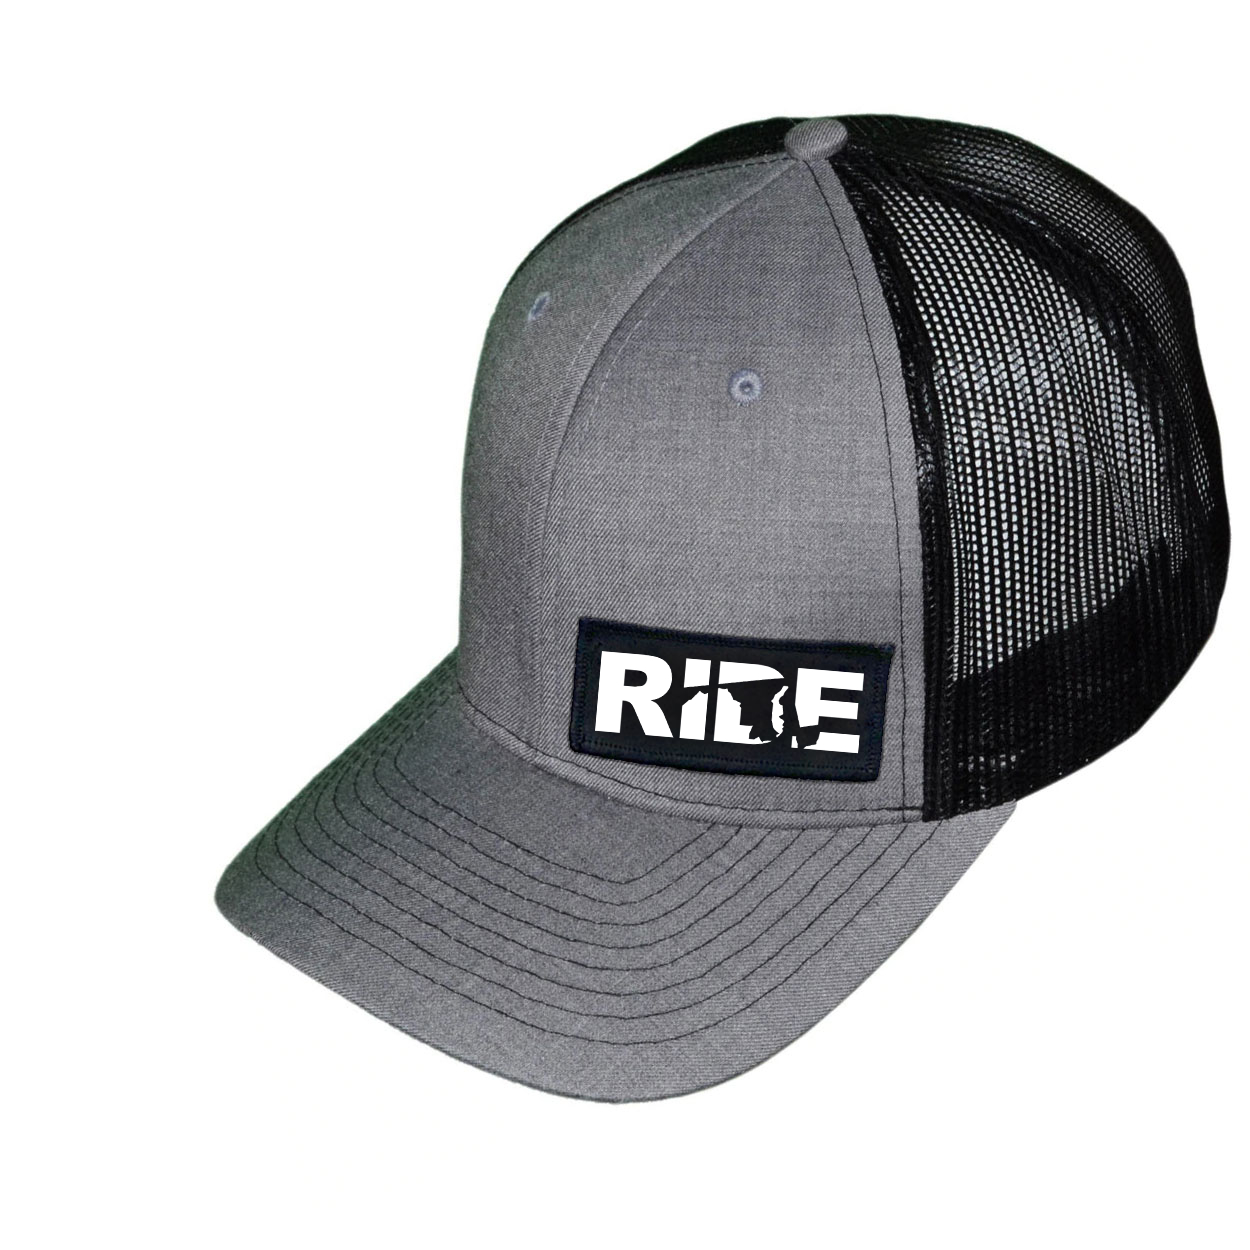 Ride Maryland Night Out Woven Patch Snapback Trucker Hat Heather Gray/Black (White Logo)